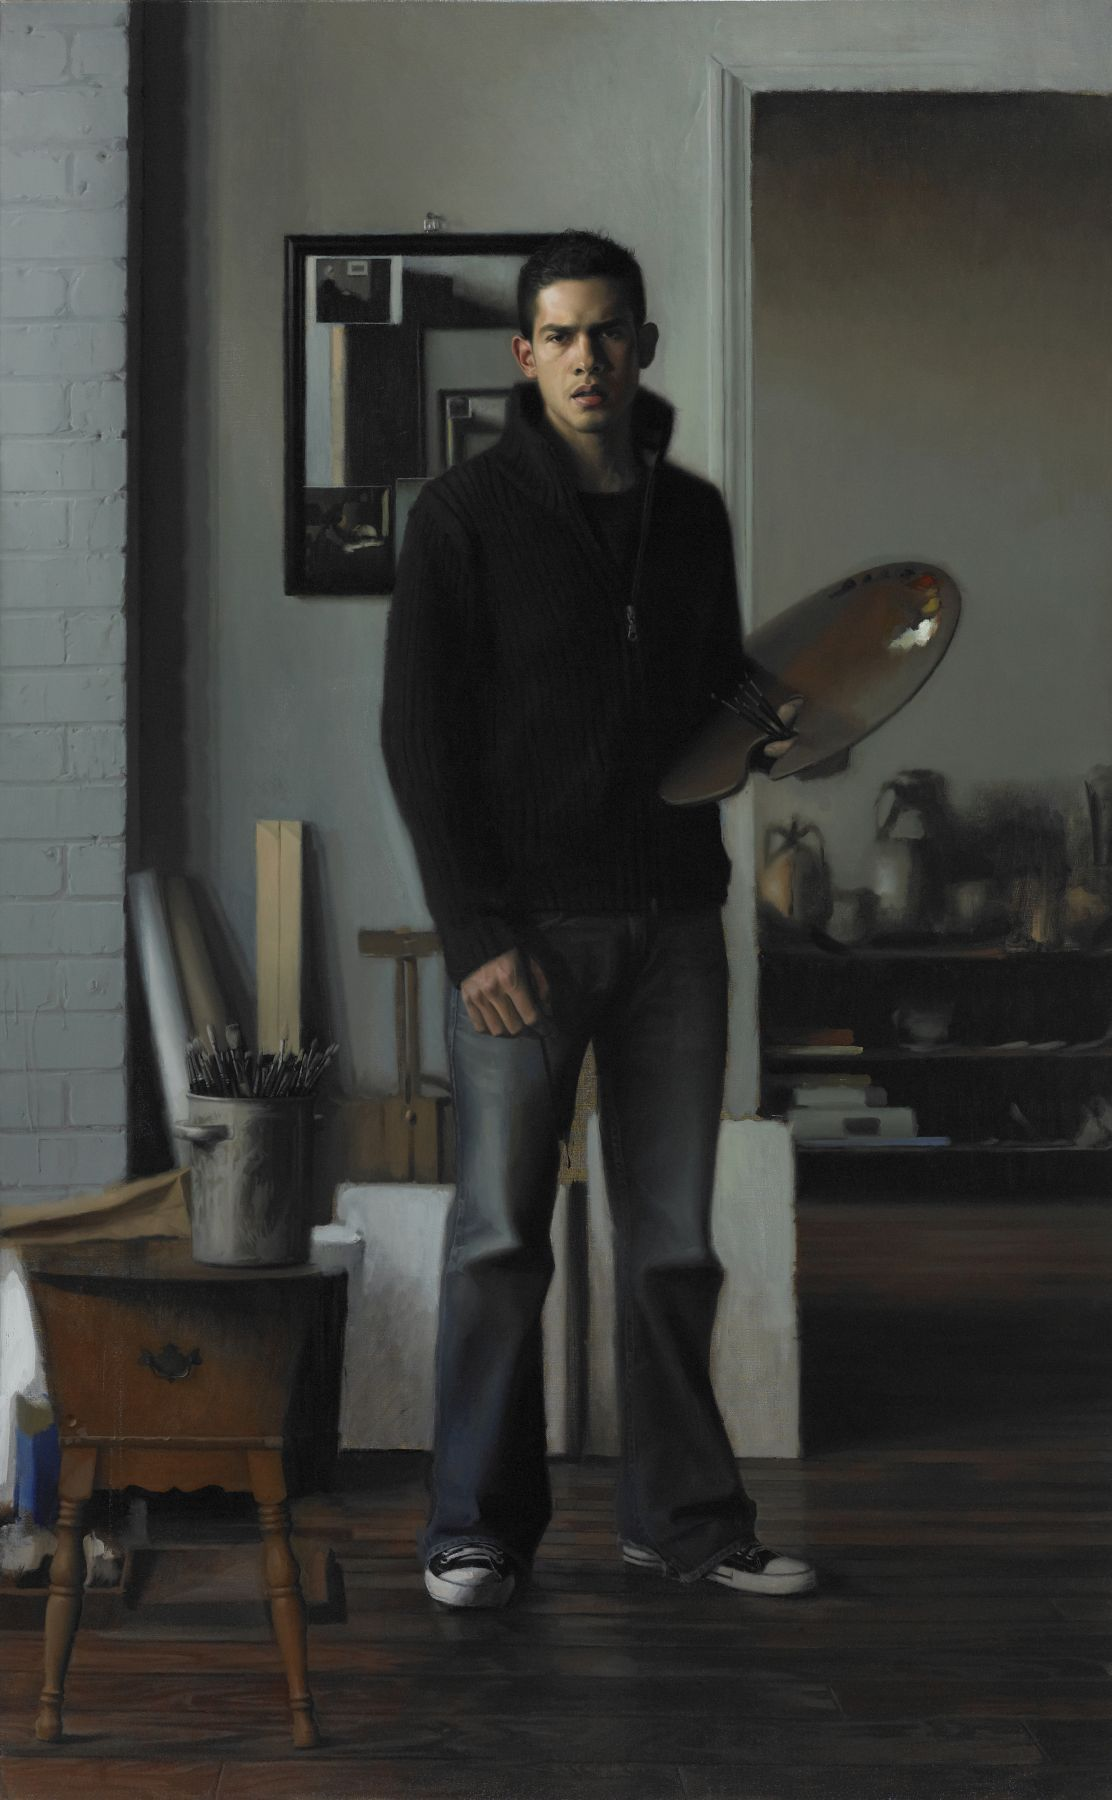 Jesus Villarreal, El Espejo (The Mirror), 2010-11, oil on linen, 68 x 40 inches